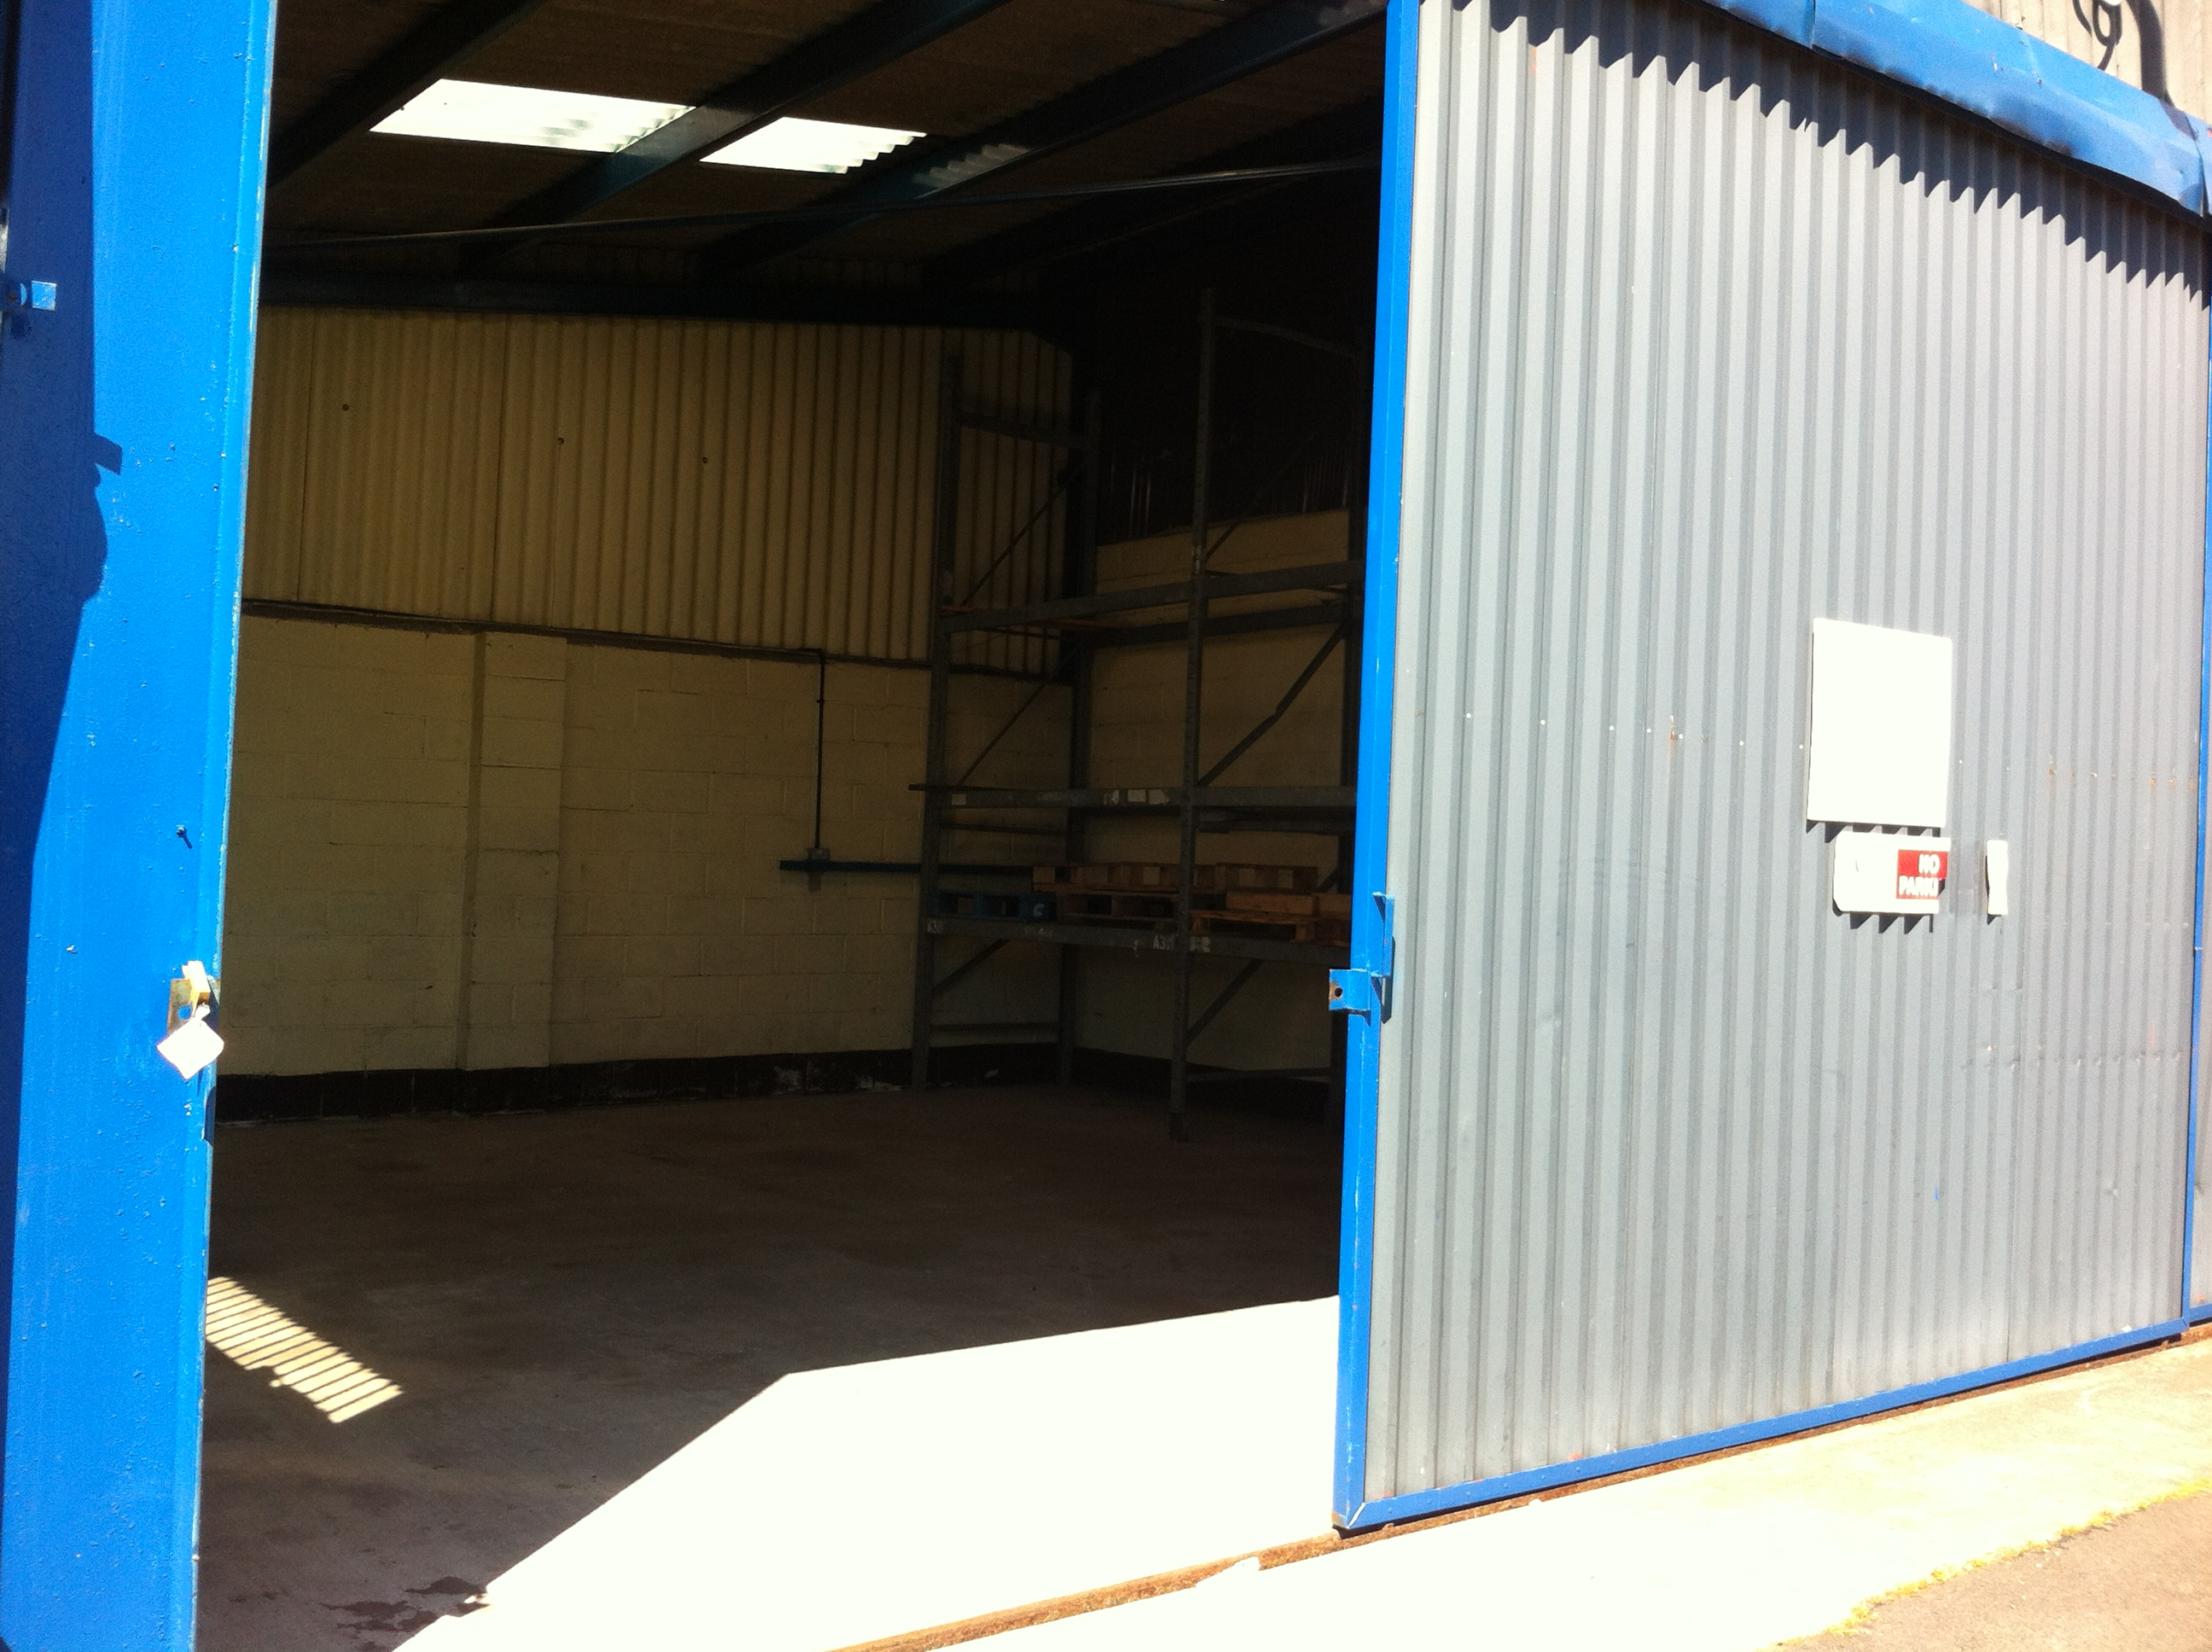 hw pryce and son ltd warehouse space to rent for storage in telford. Black Bedroom Furniture Sets. Home Design Ideas